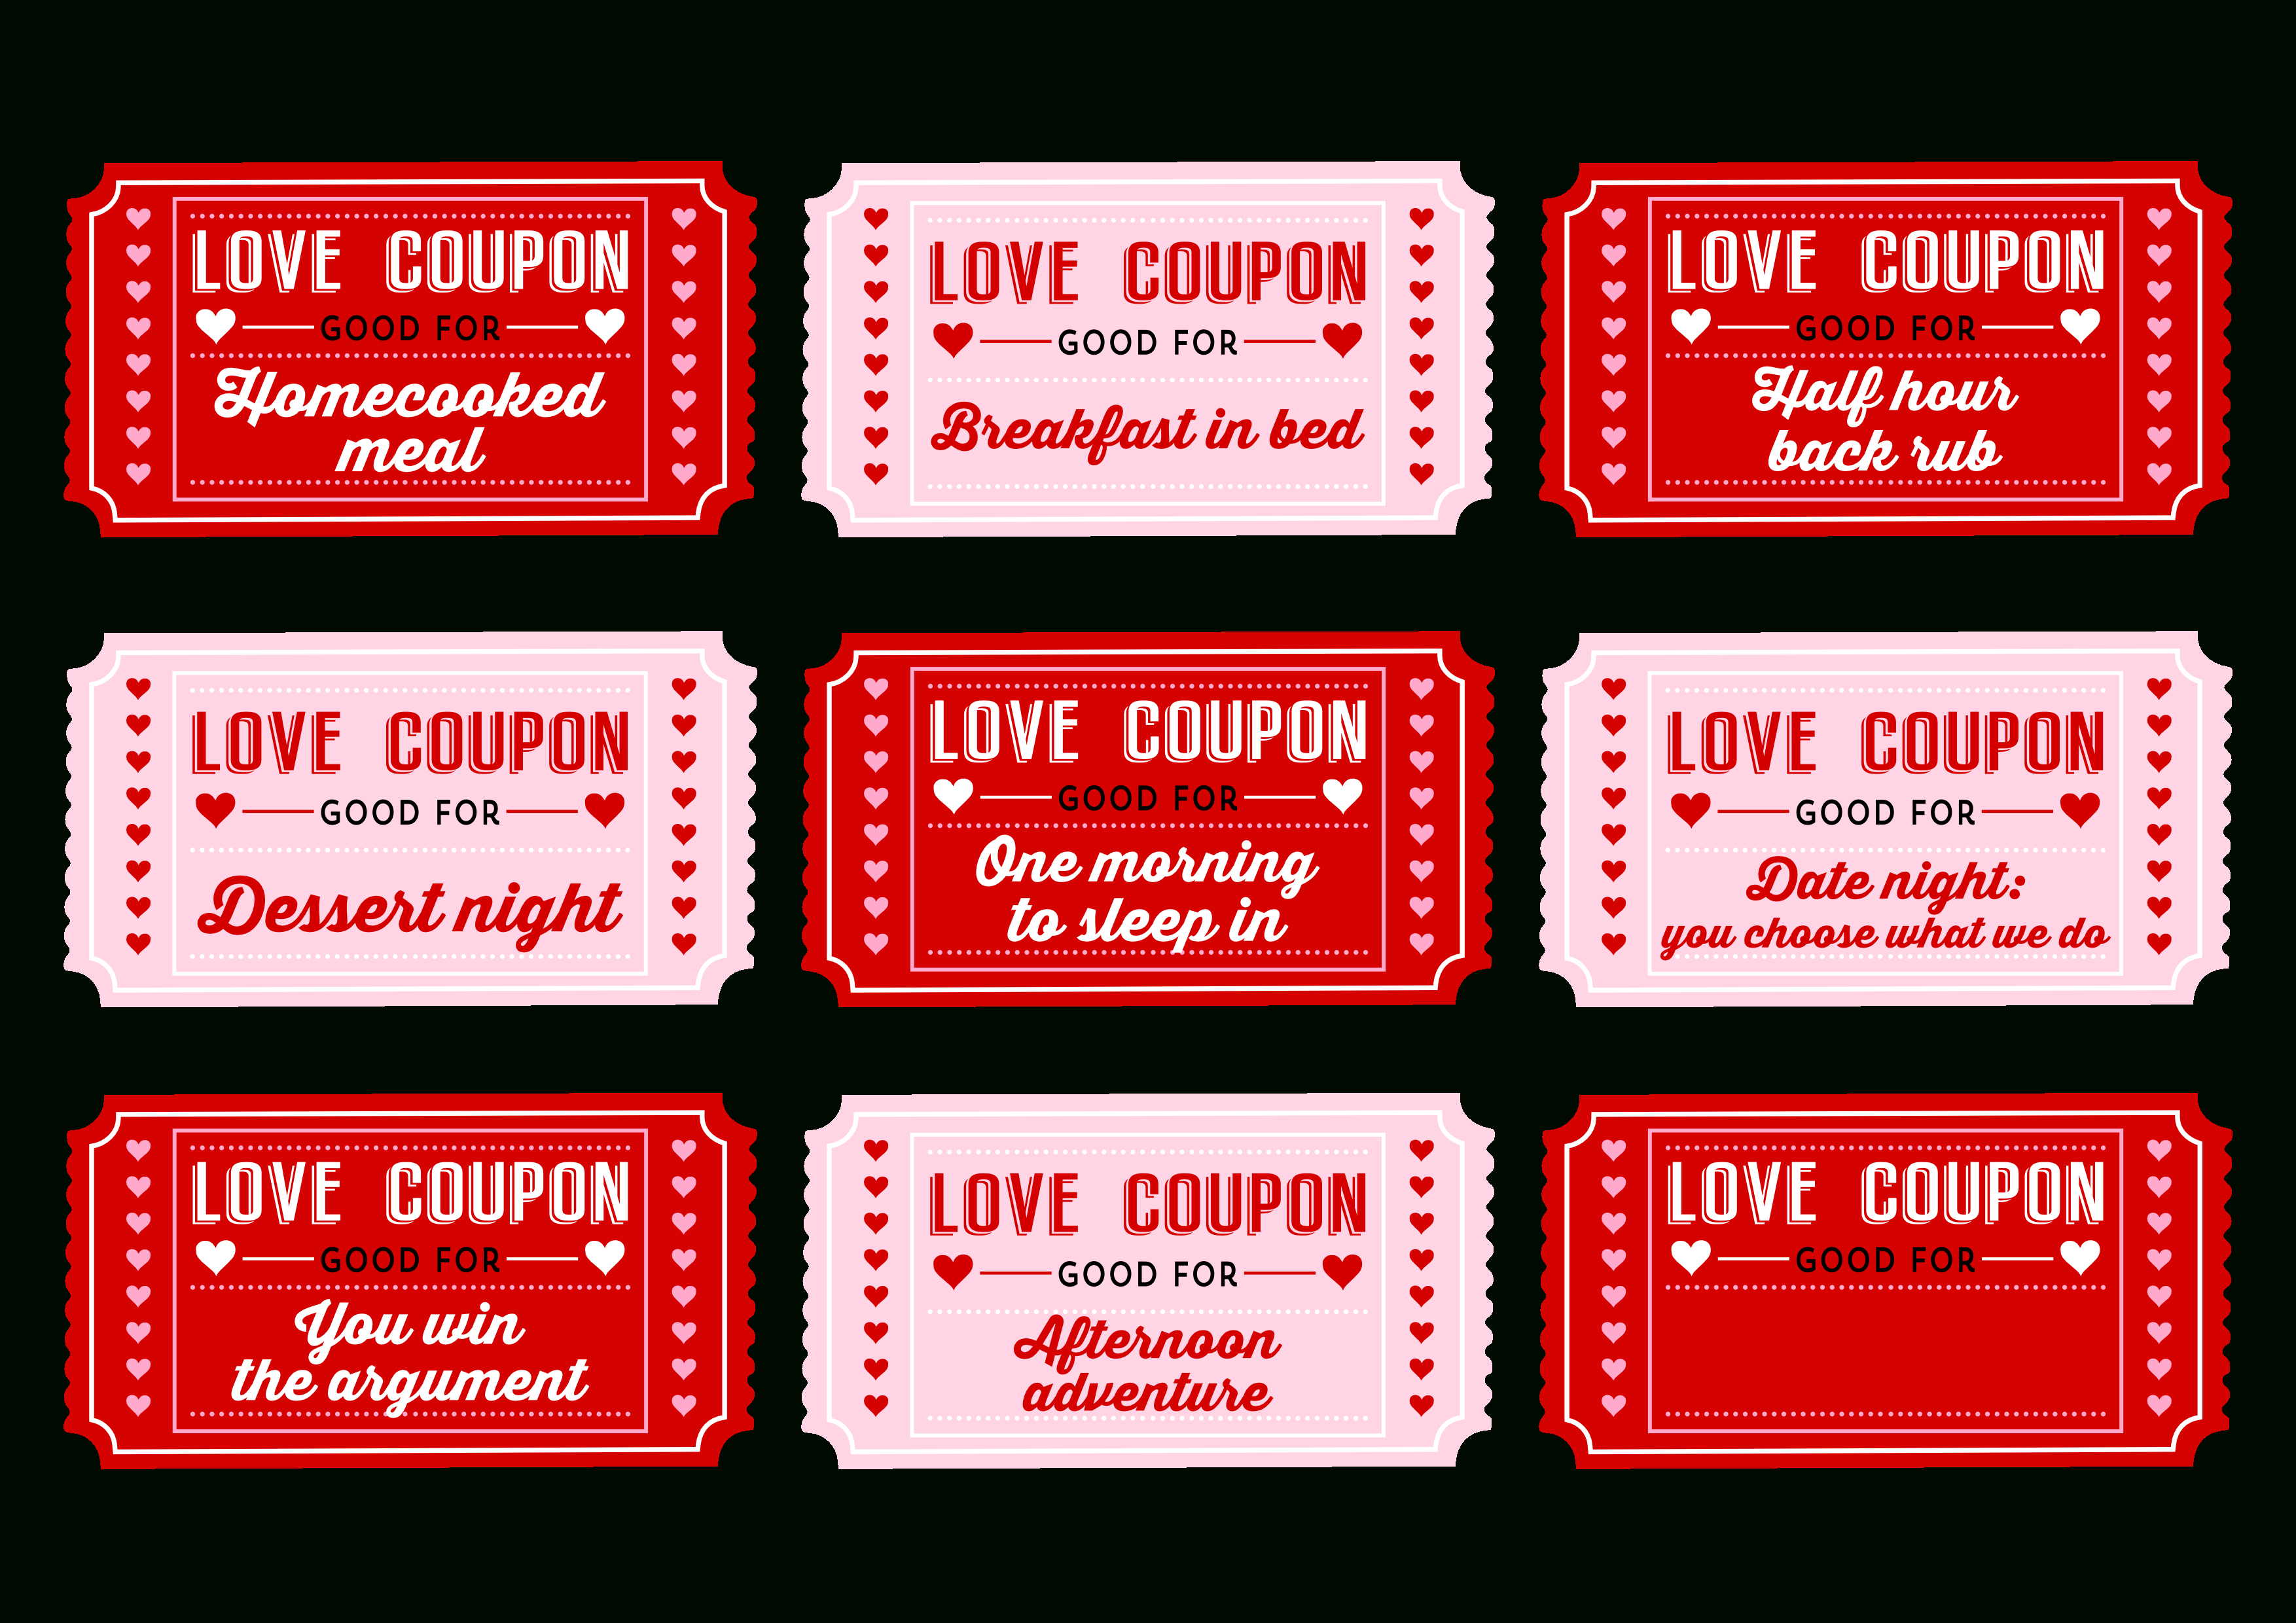 Free Printable Love Coupons For Couples On Valentine's Day! | Catch - Free Printable Coupons For Husband